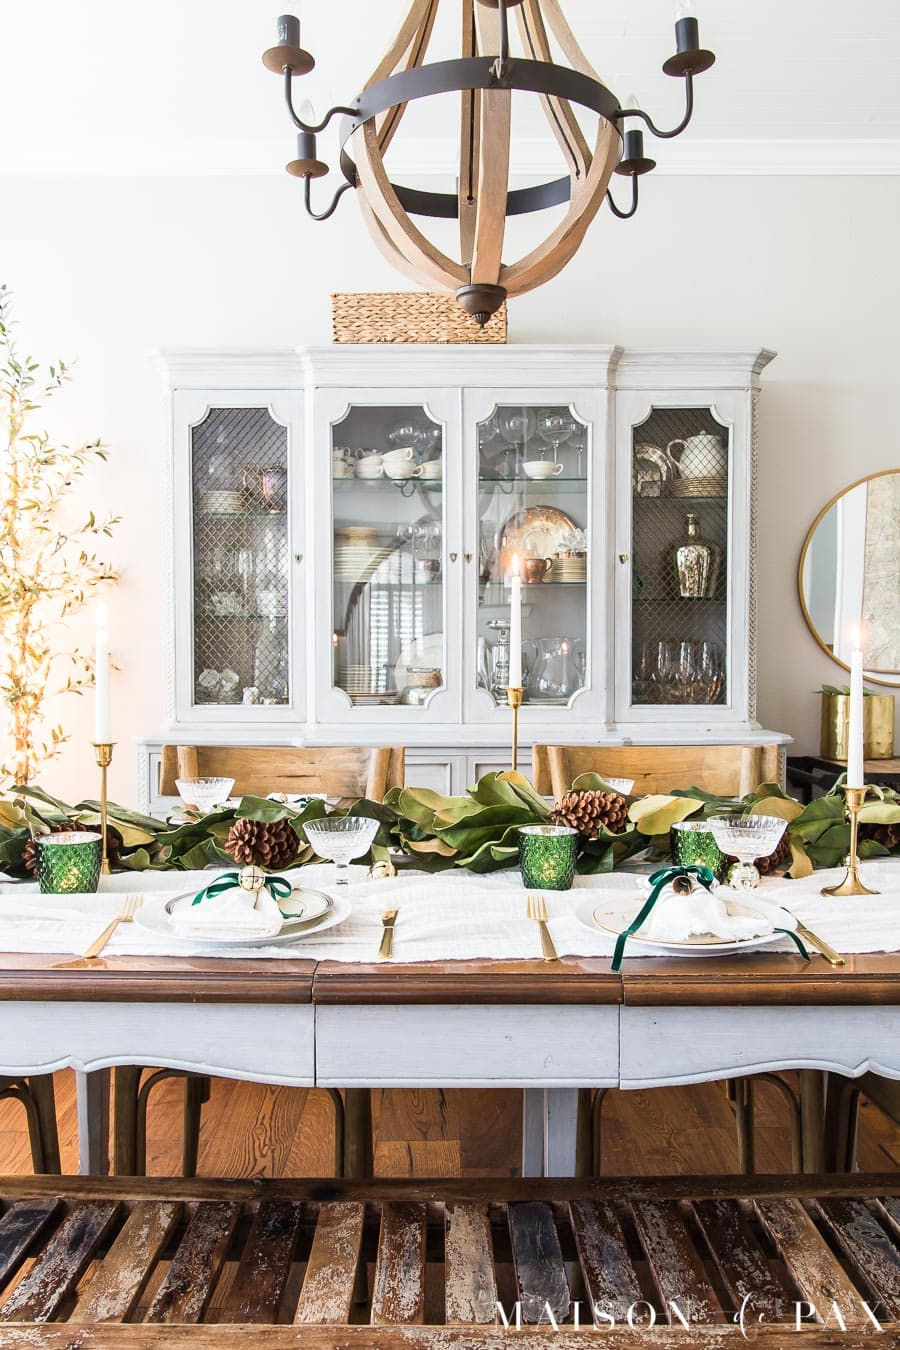 table decorated for Christmas dinner with bells and green ribbon | Maison de Pax